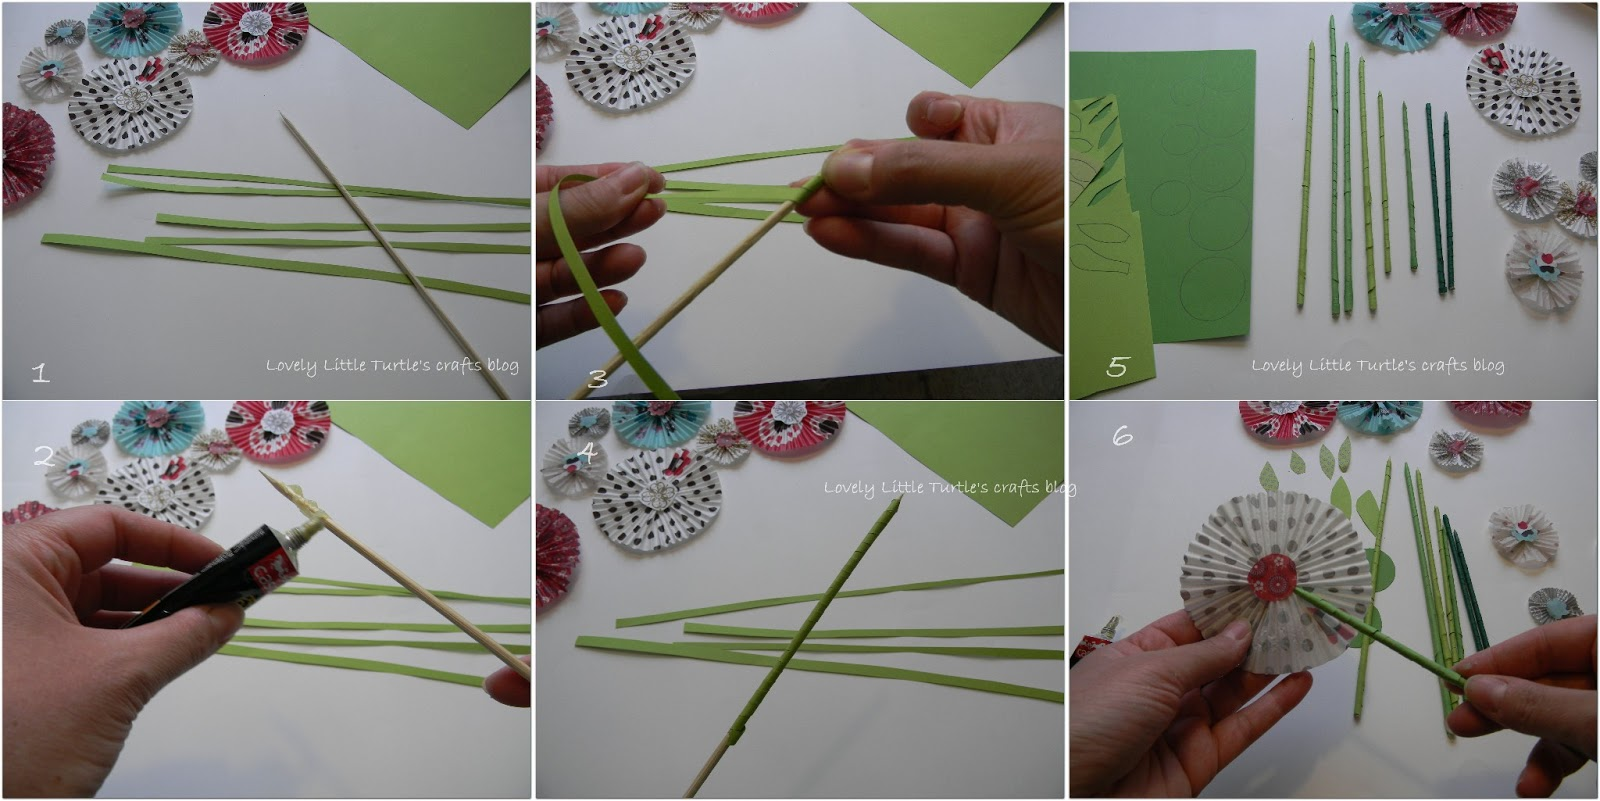 Lovely little turtles crafts blog dyi muffin liner paper flowers making the stems of the paper flowers mightylinksfo